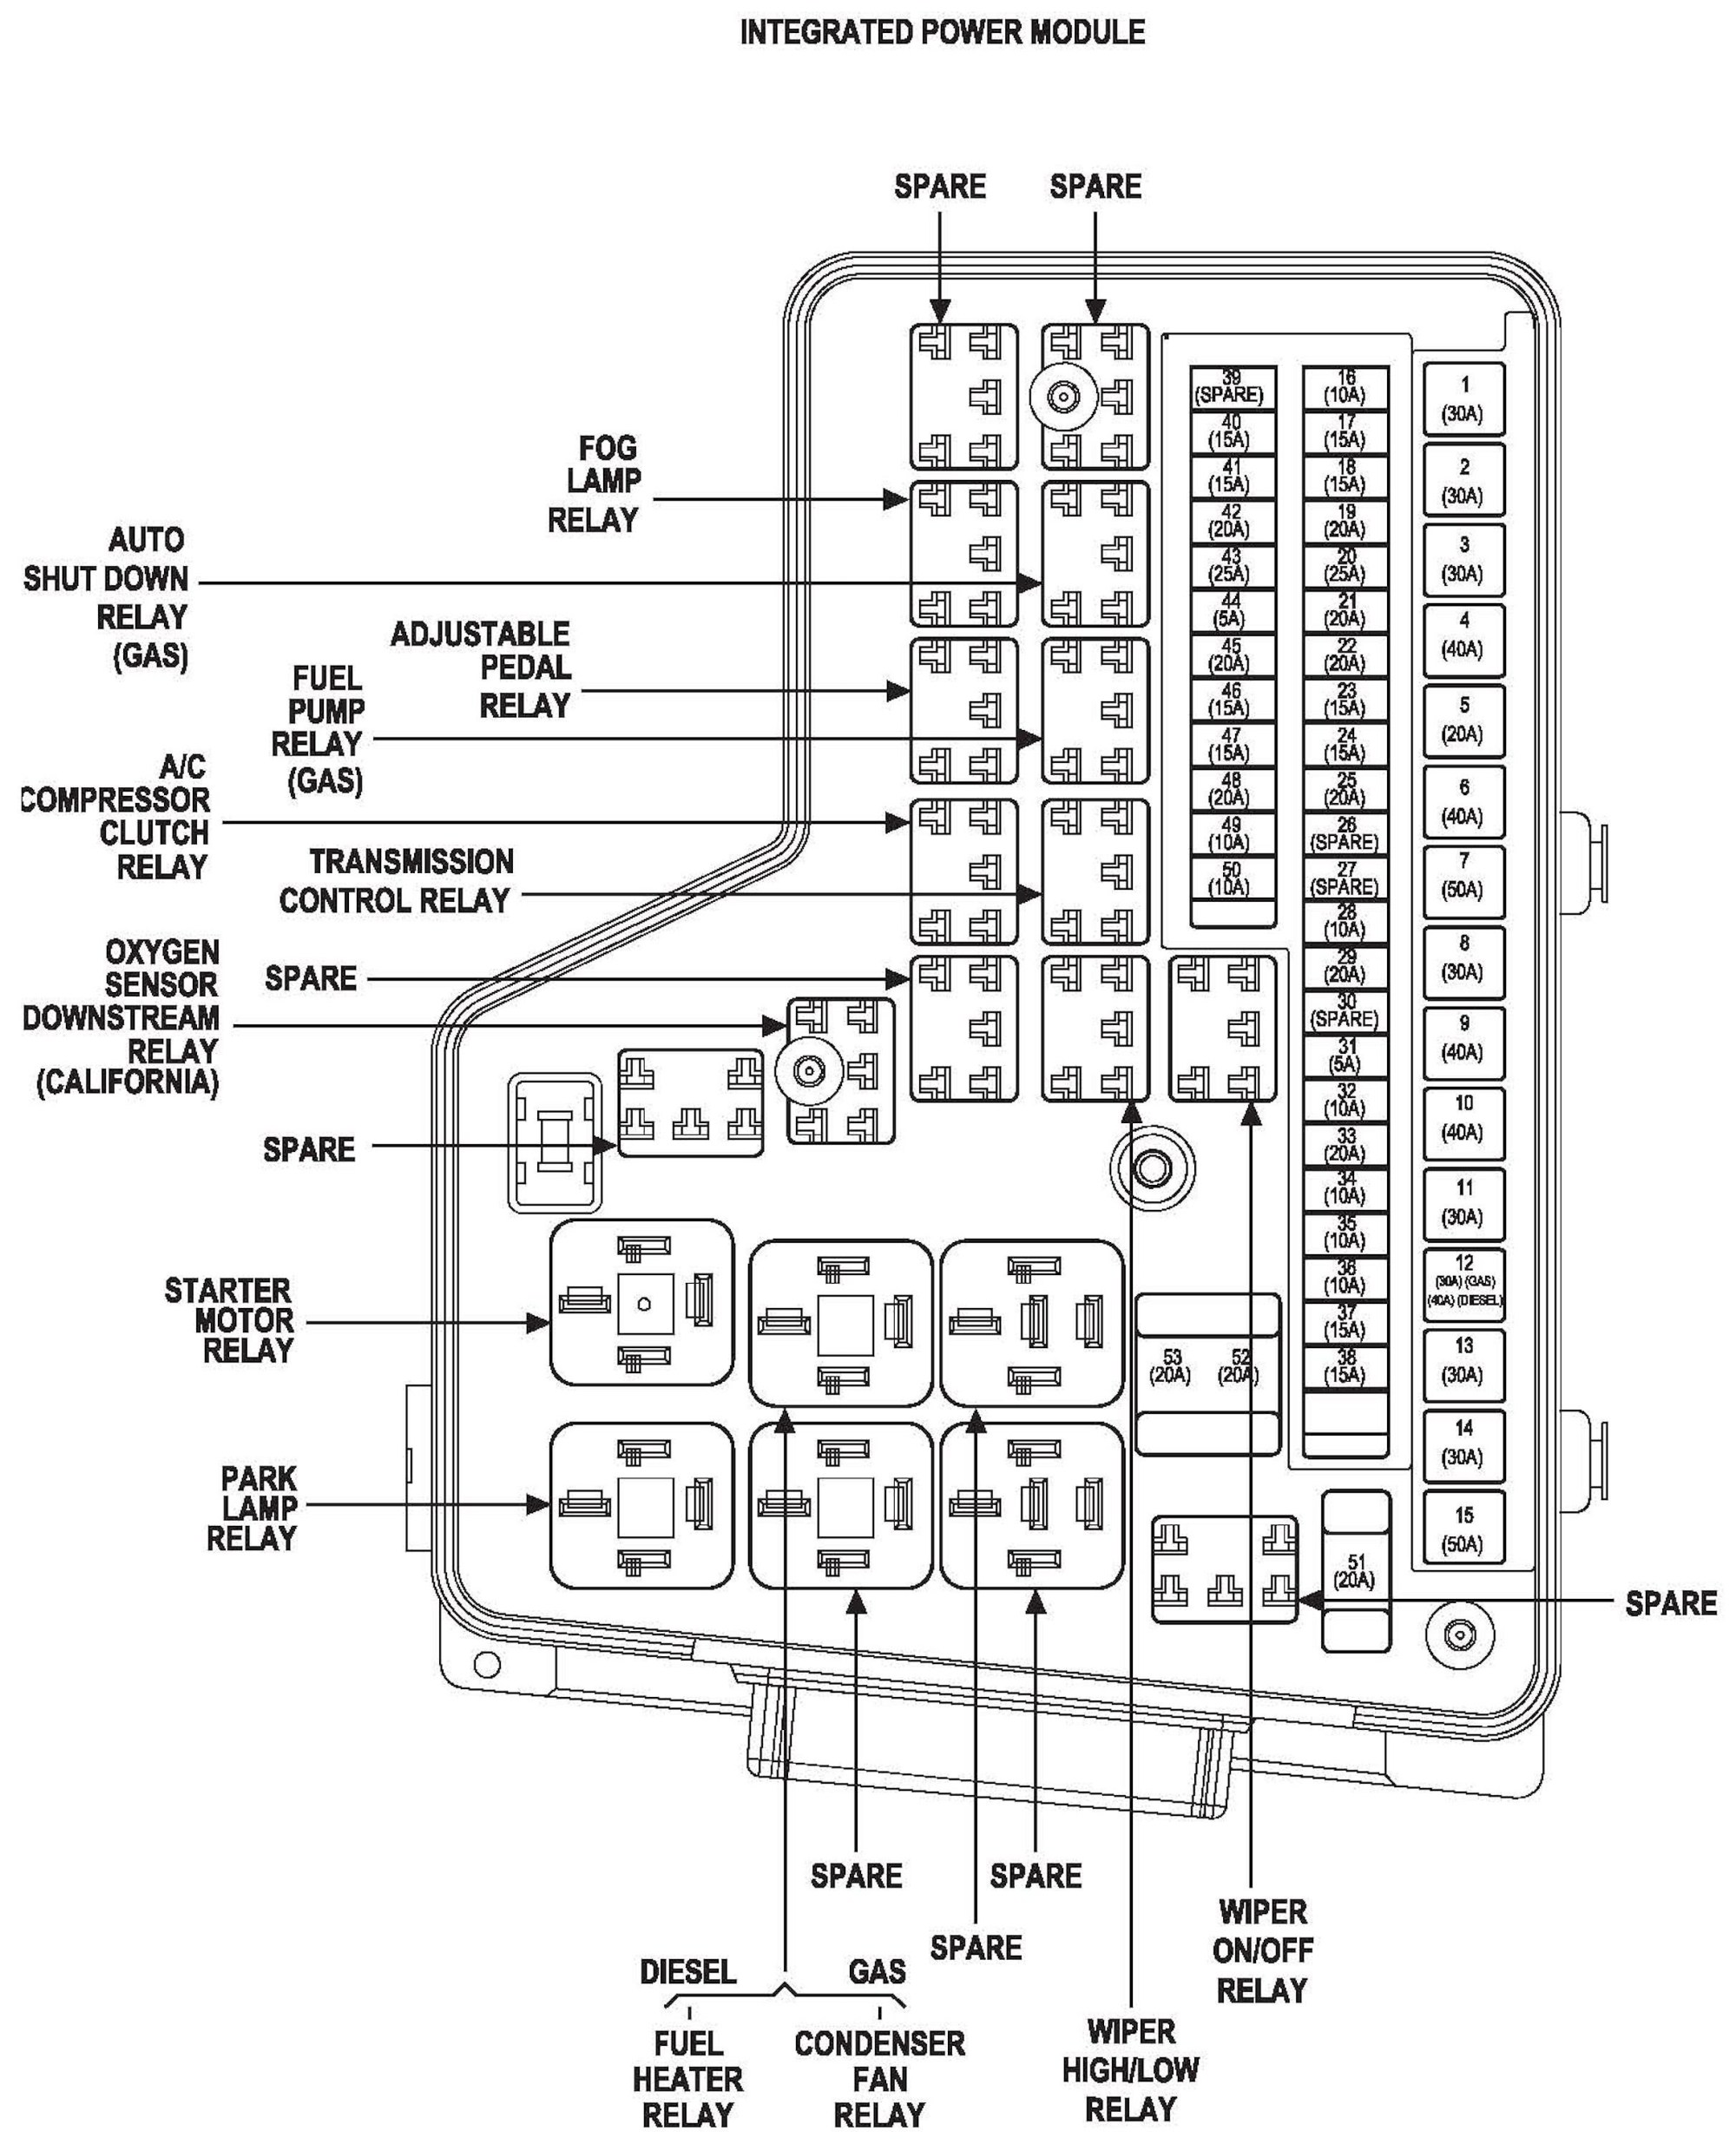 hight resolution of 2003 dodge ram 2500 fuse box diagram wiring diagrams mon 2003 dodge ram 2500 fuse box diagram 2003 dodge ram 2500 fuse box